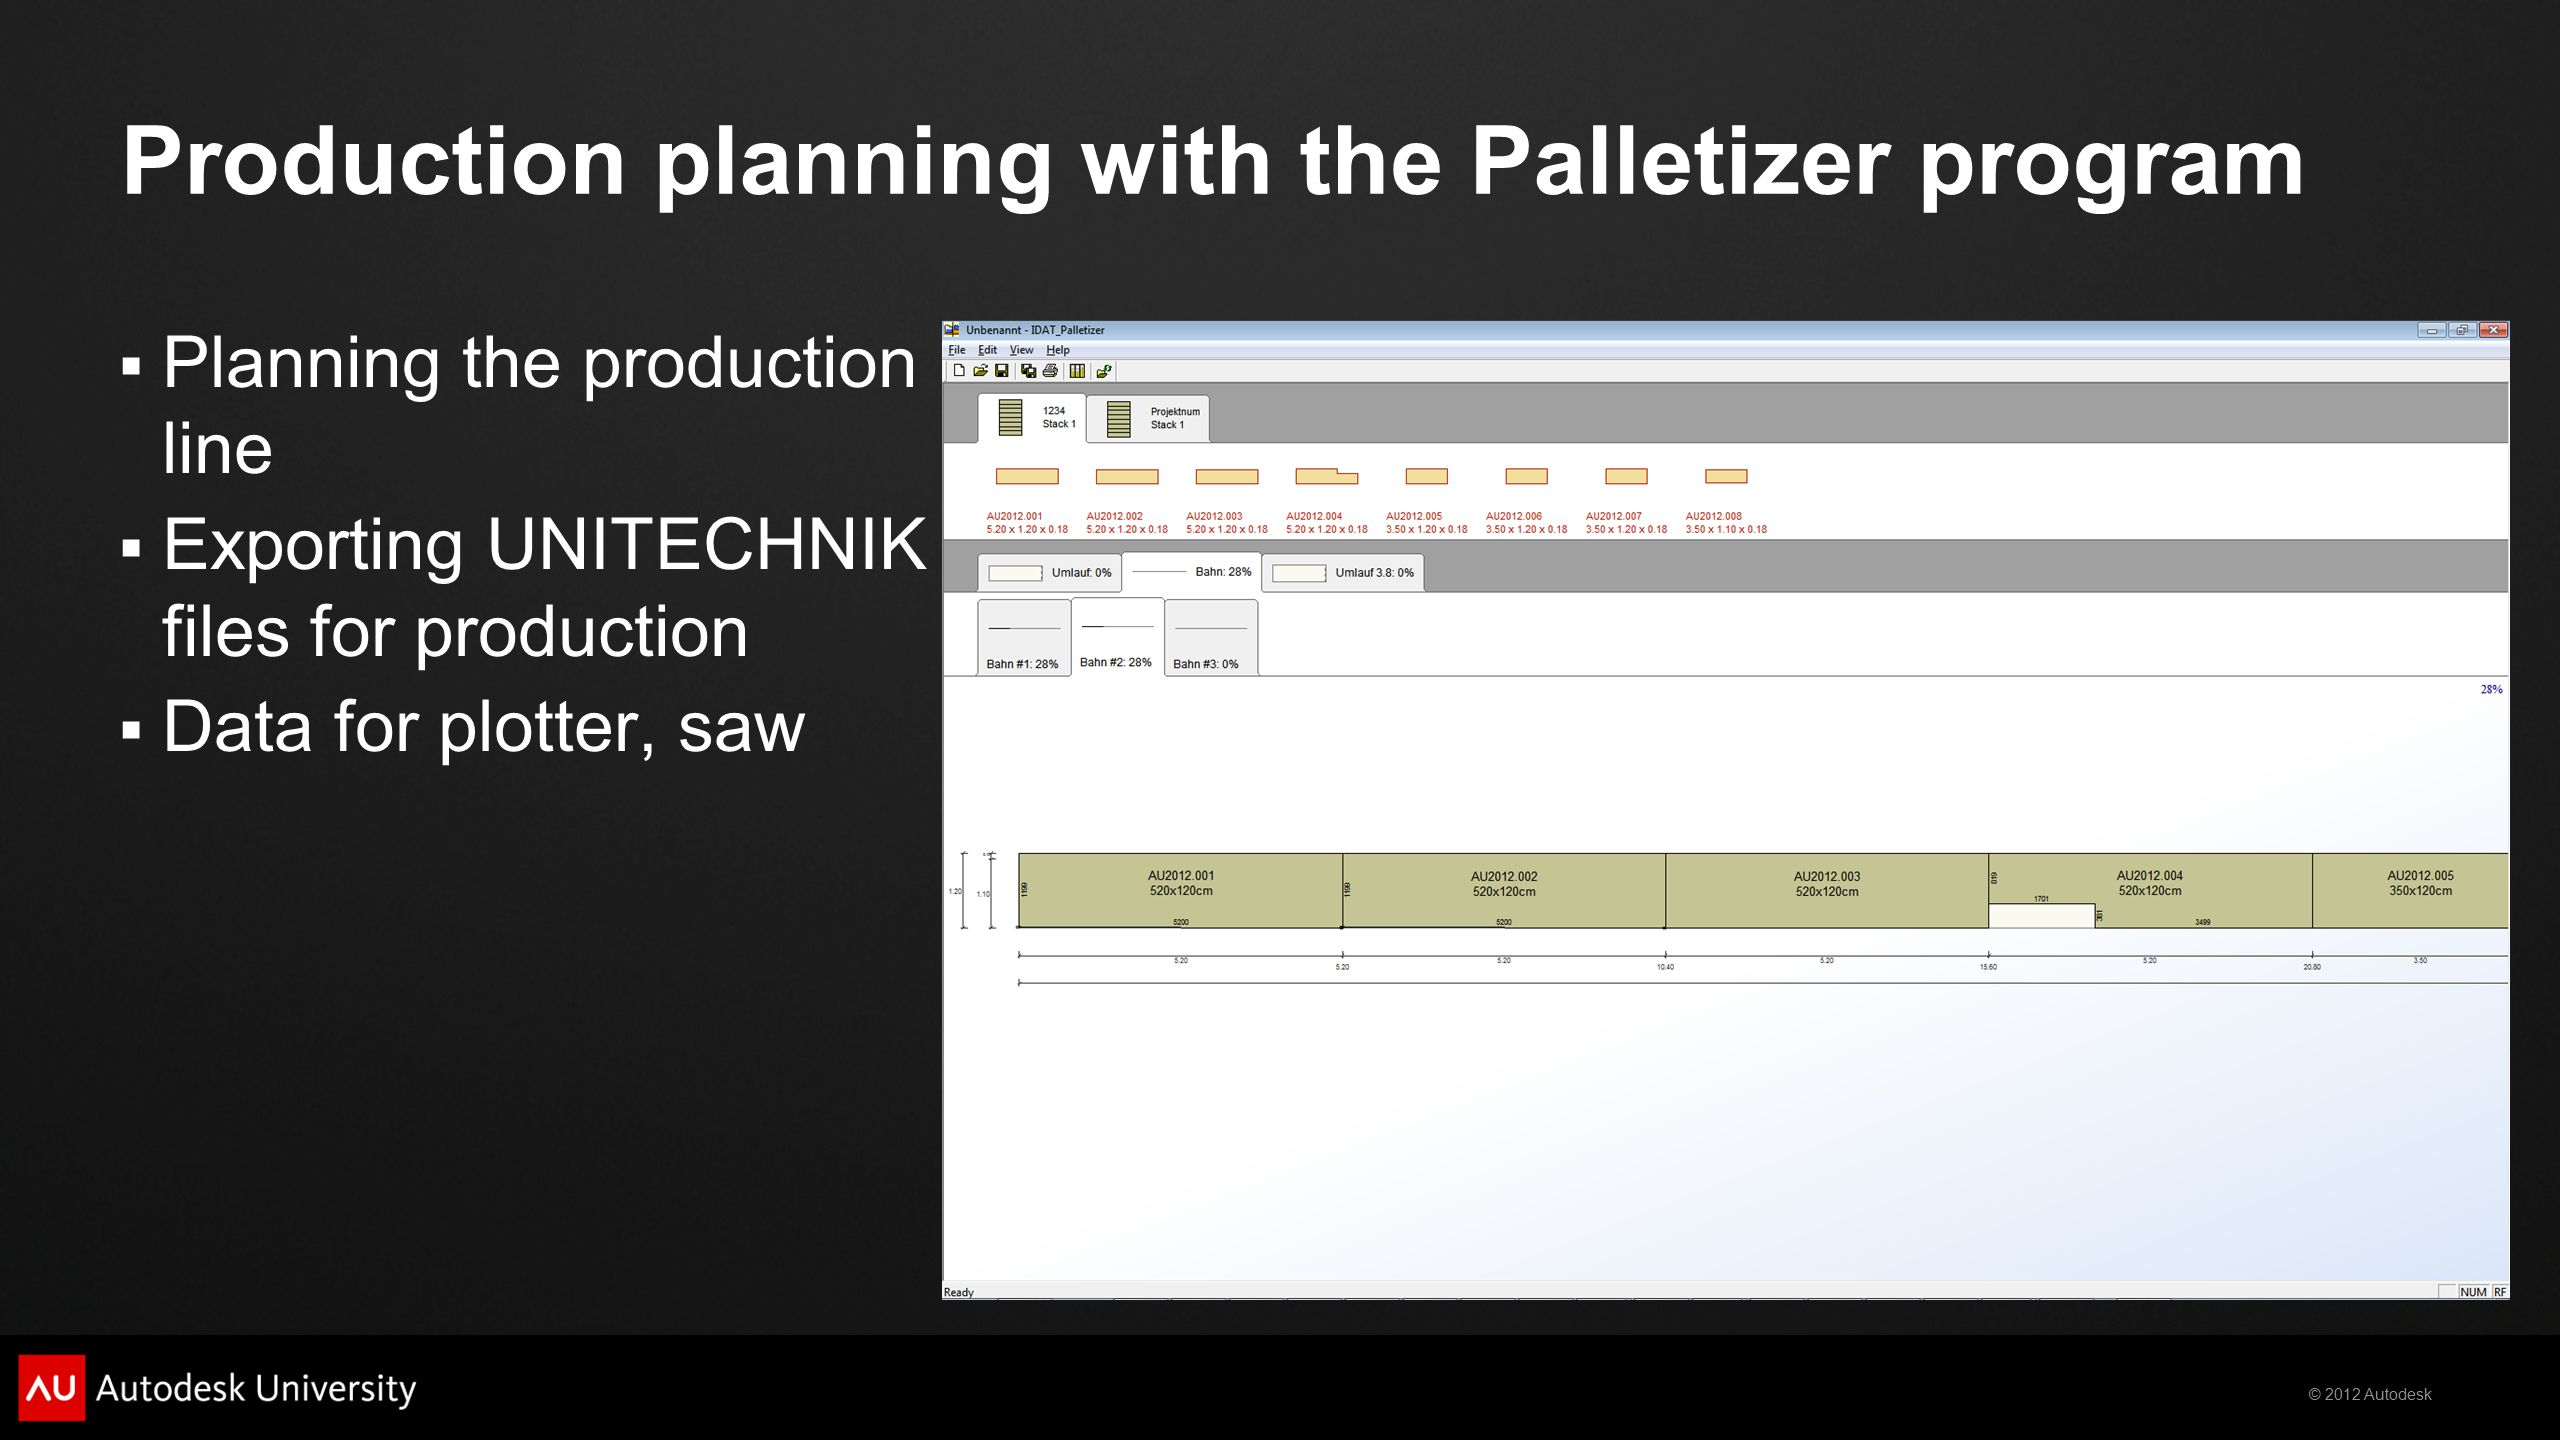 Production planning with the Palletizer program